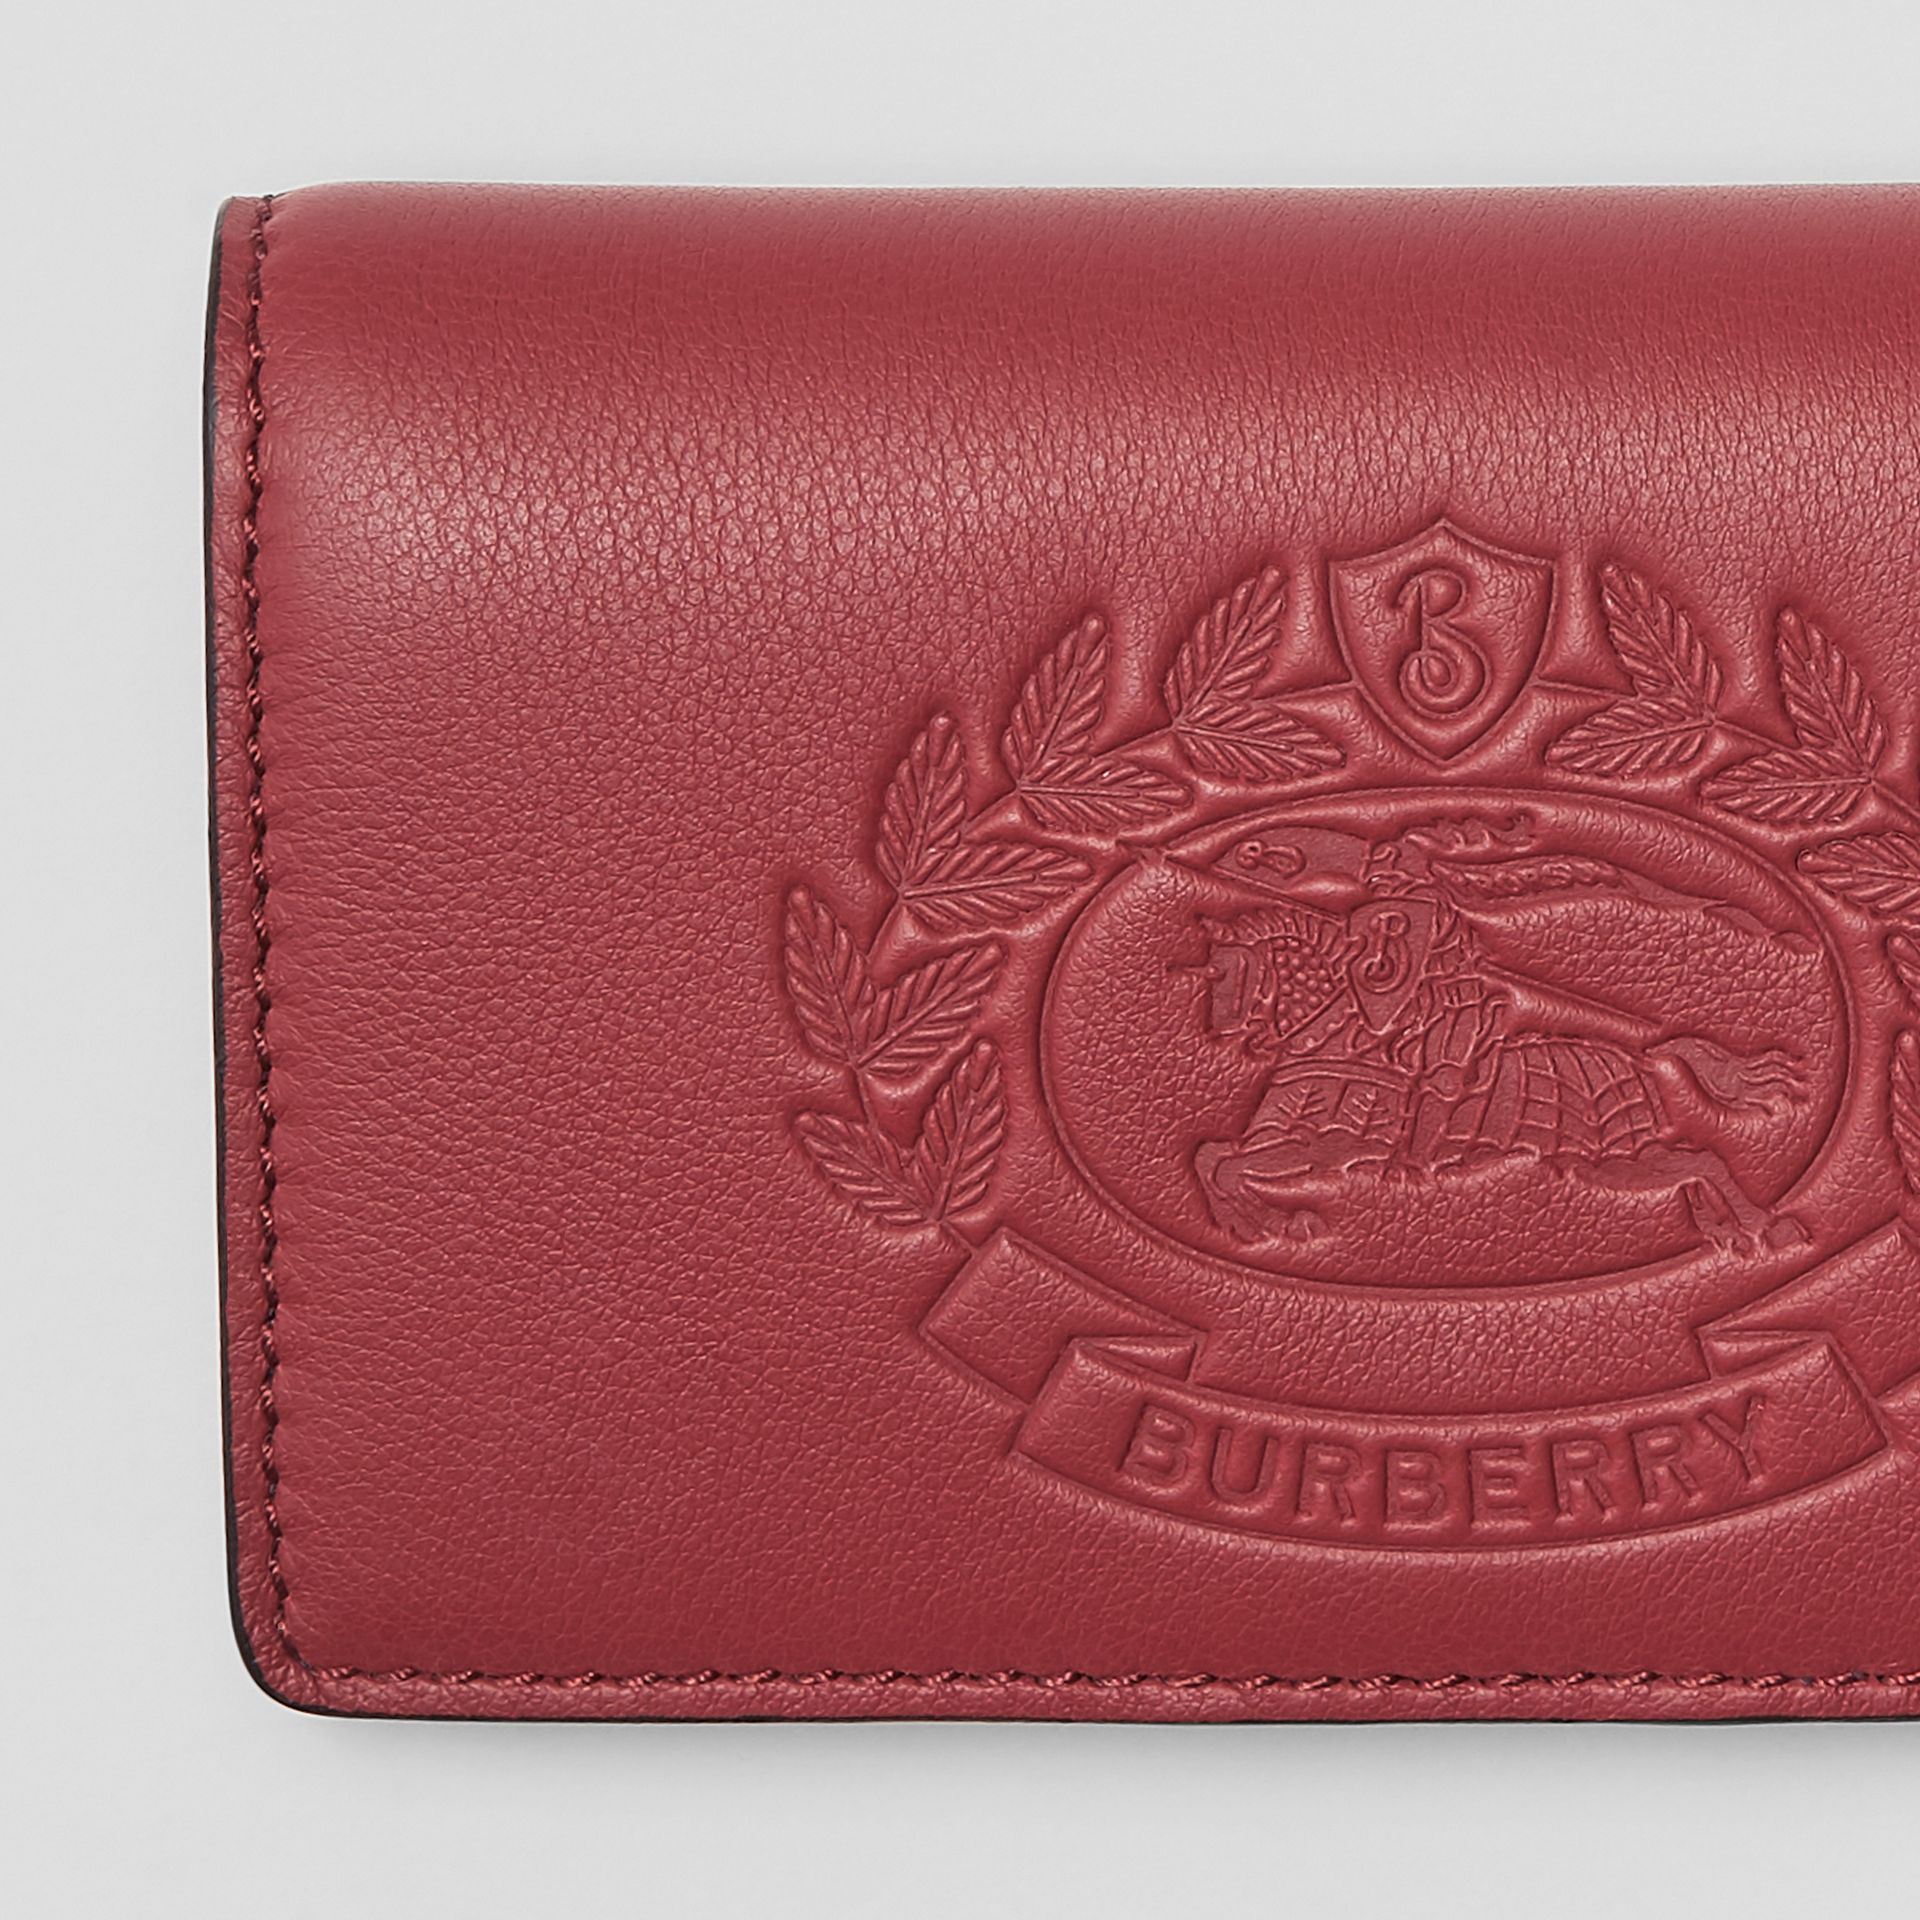 Small Embossed Crest Two-tone Leather Wallet in Crimson - Women | Burberry Hong Kong - gallery image 1